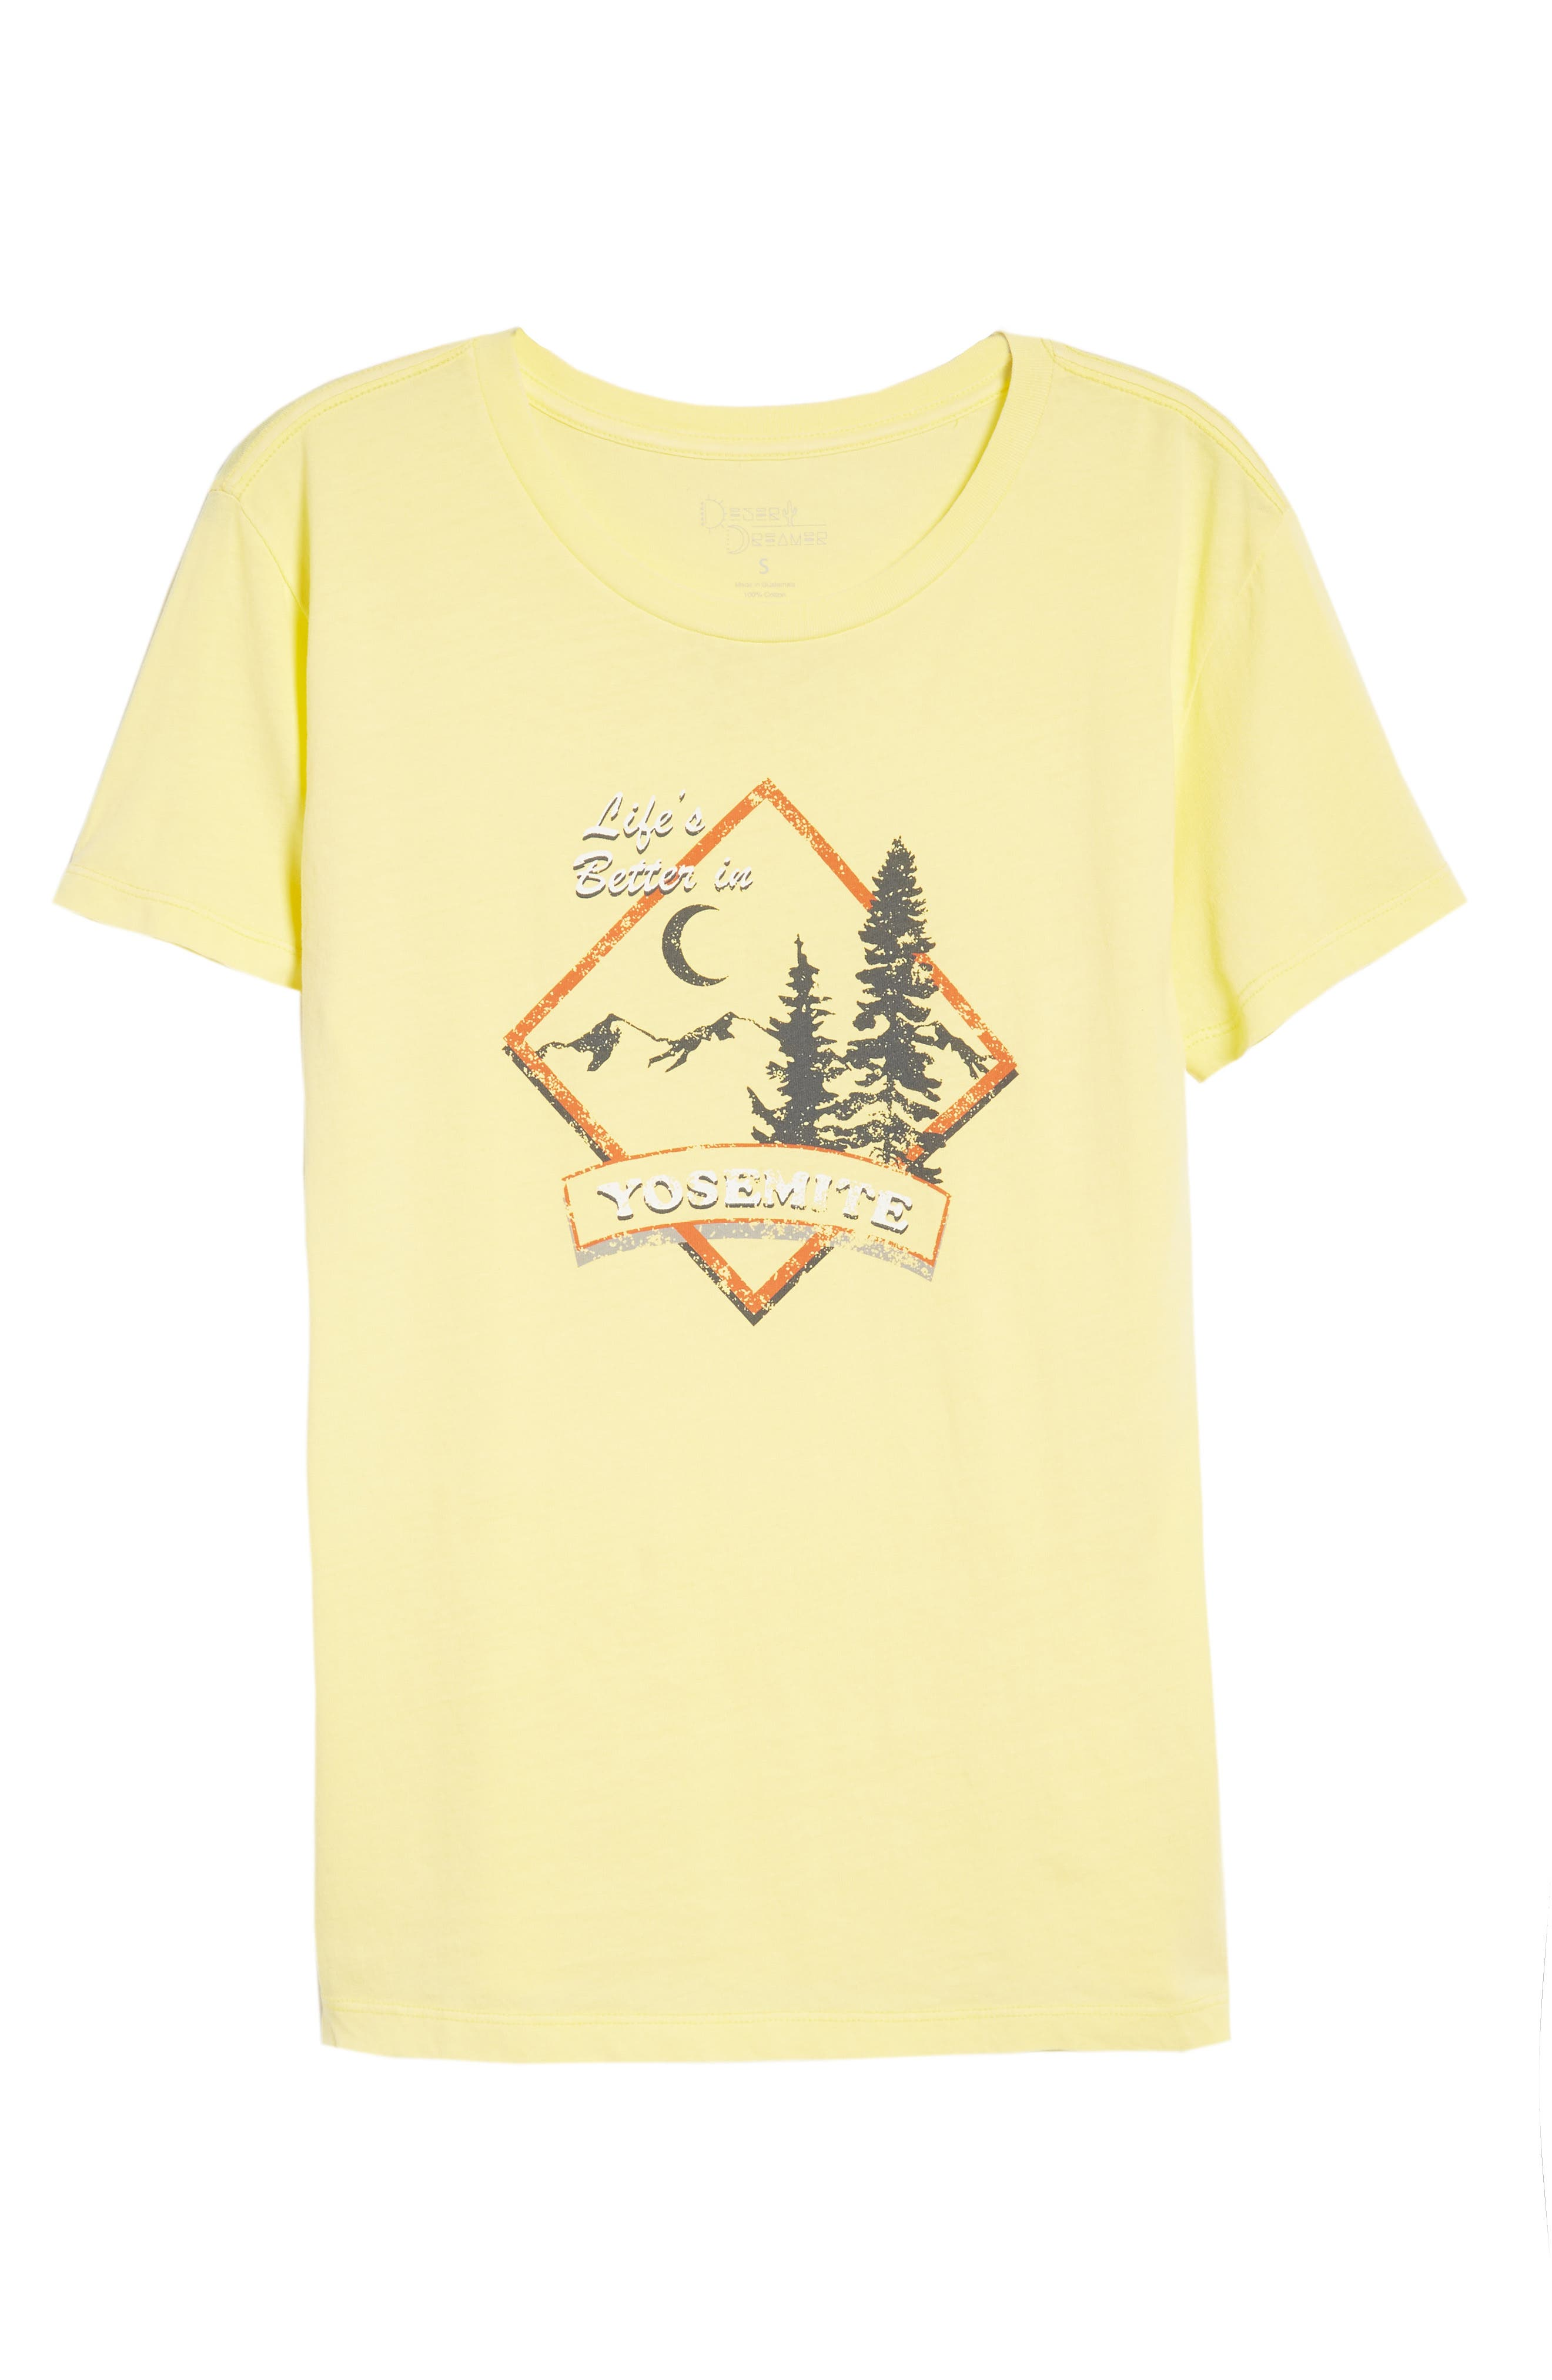 Yosemite Graphic Tee,                             Alternate thumbnail 7, color,                             Washed Yellow